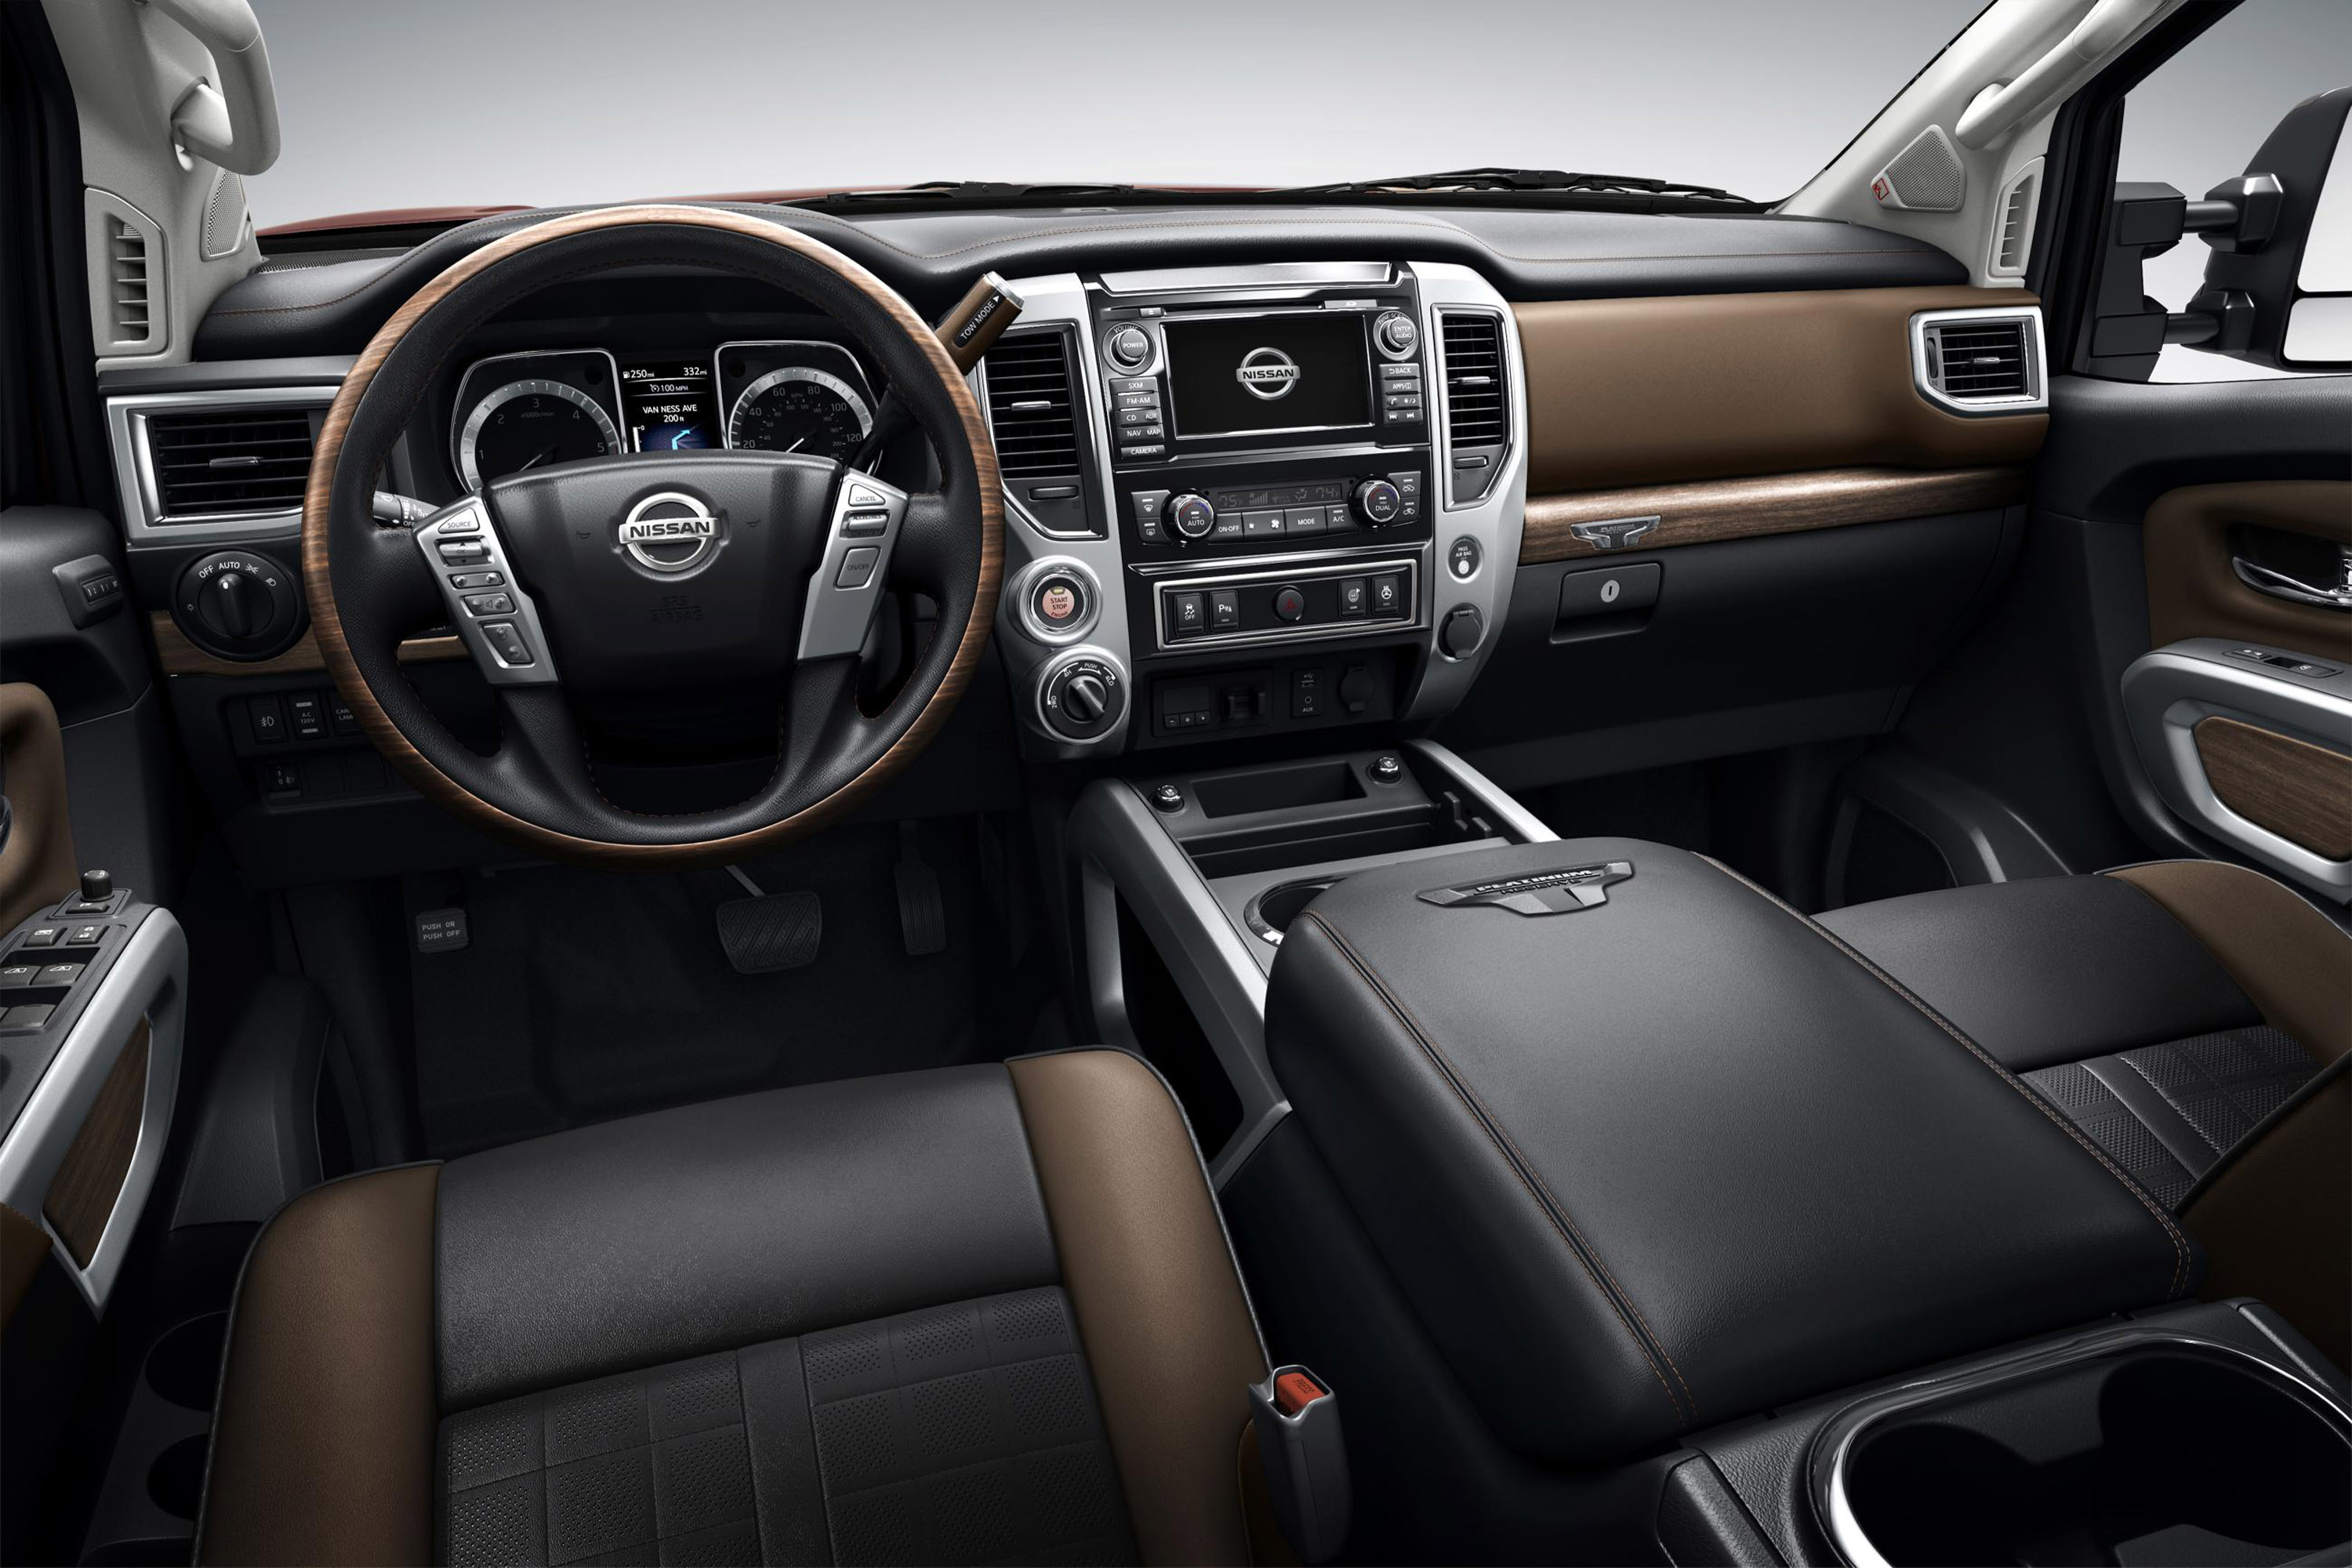 2016 Nissan Titan Xd Front Interior Cockpit (View 1 of 10)